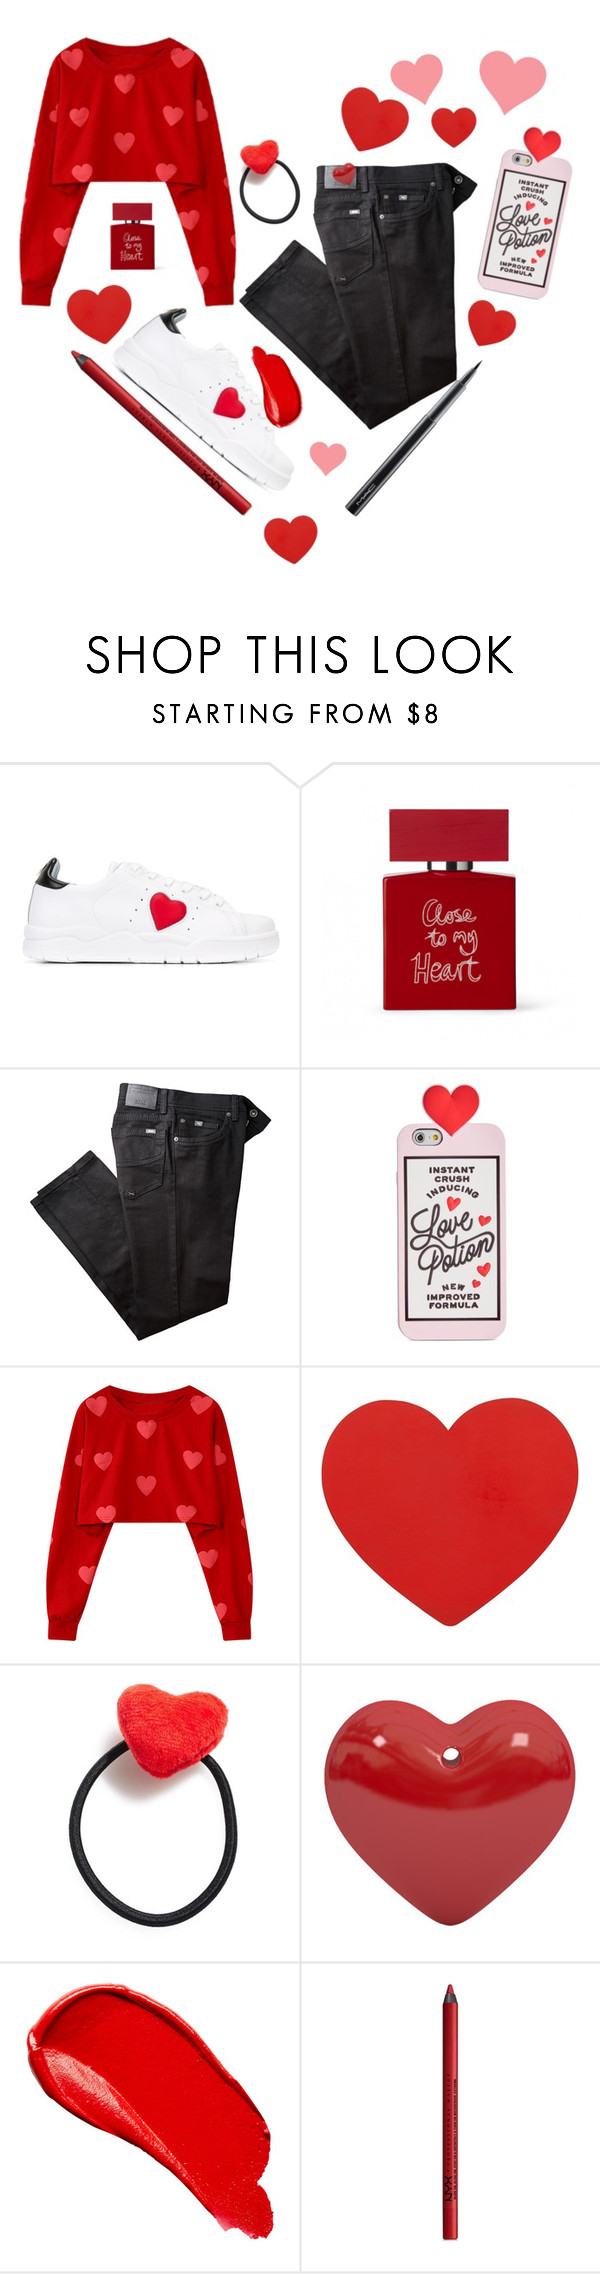 """""""Hearts ❤️"""" by tomlin945 ❤ liked on Polyvore featuring Chiara Ferragni, Bella Freud, BRAX, ban.do, Ponytail Pals, Burberry, NYX and MAC Cosmetics"""